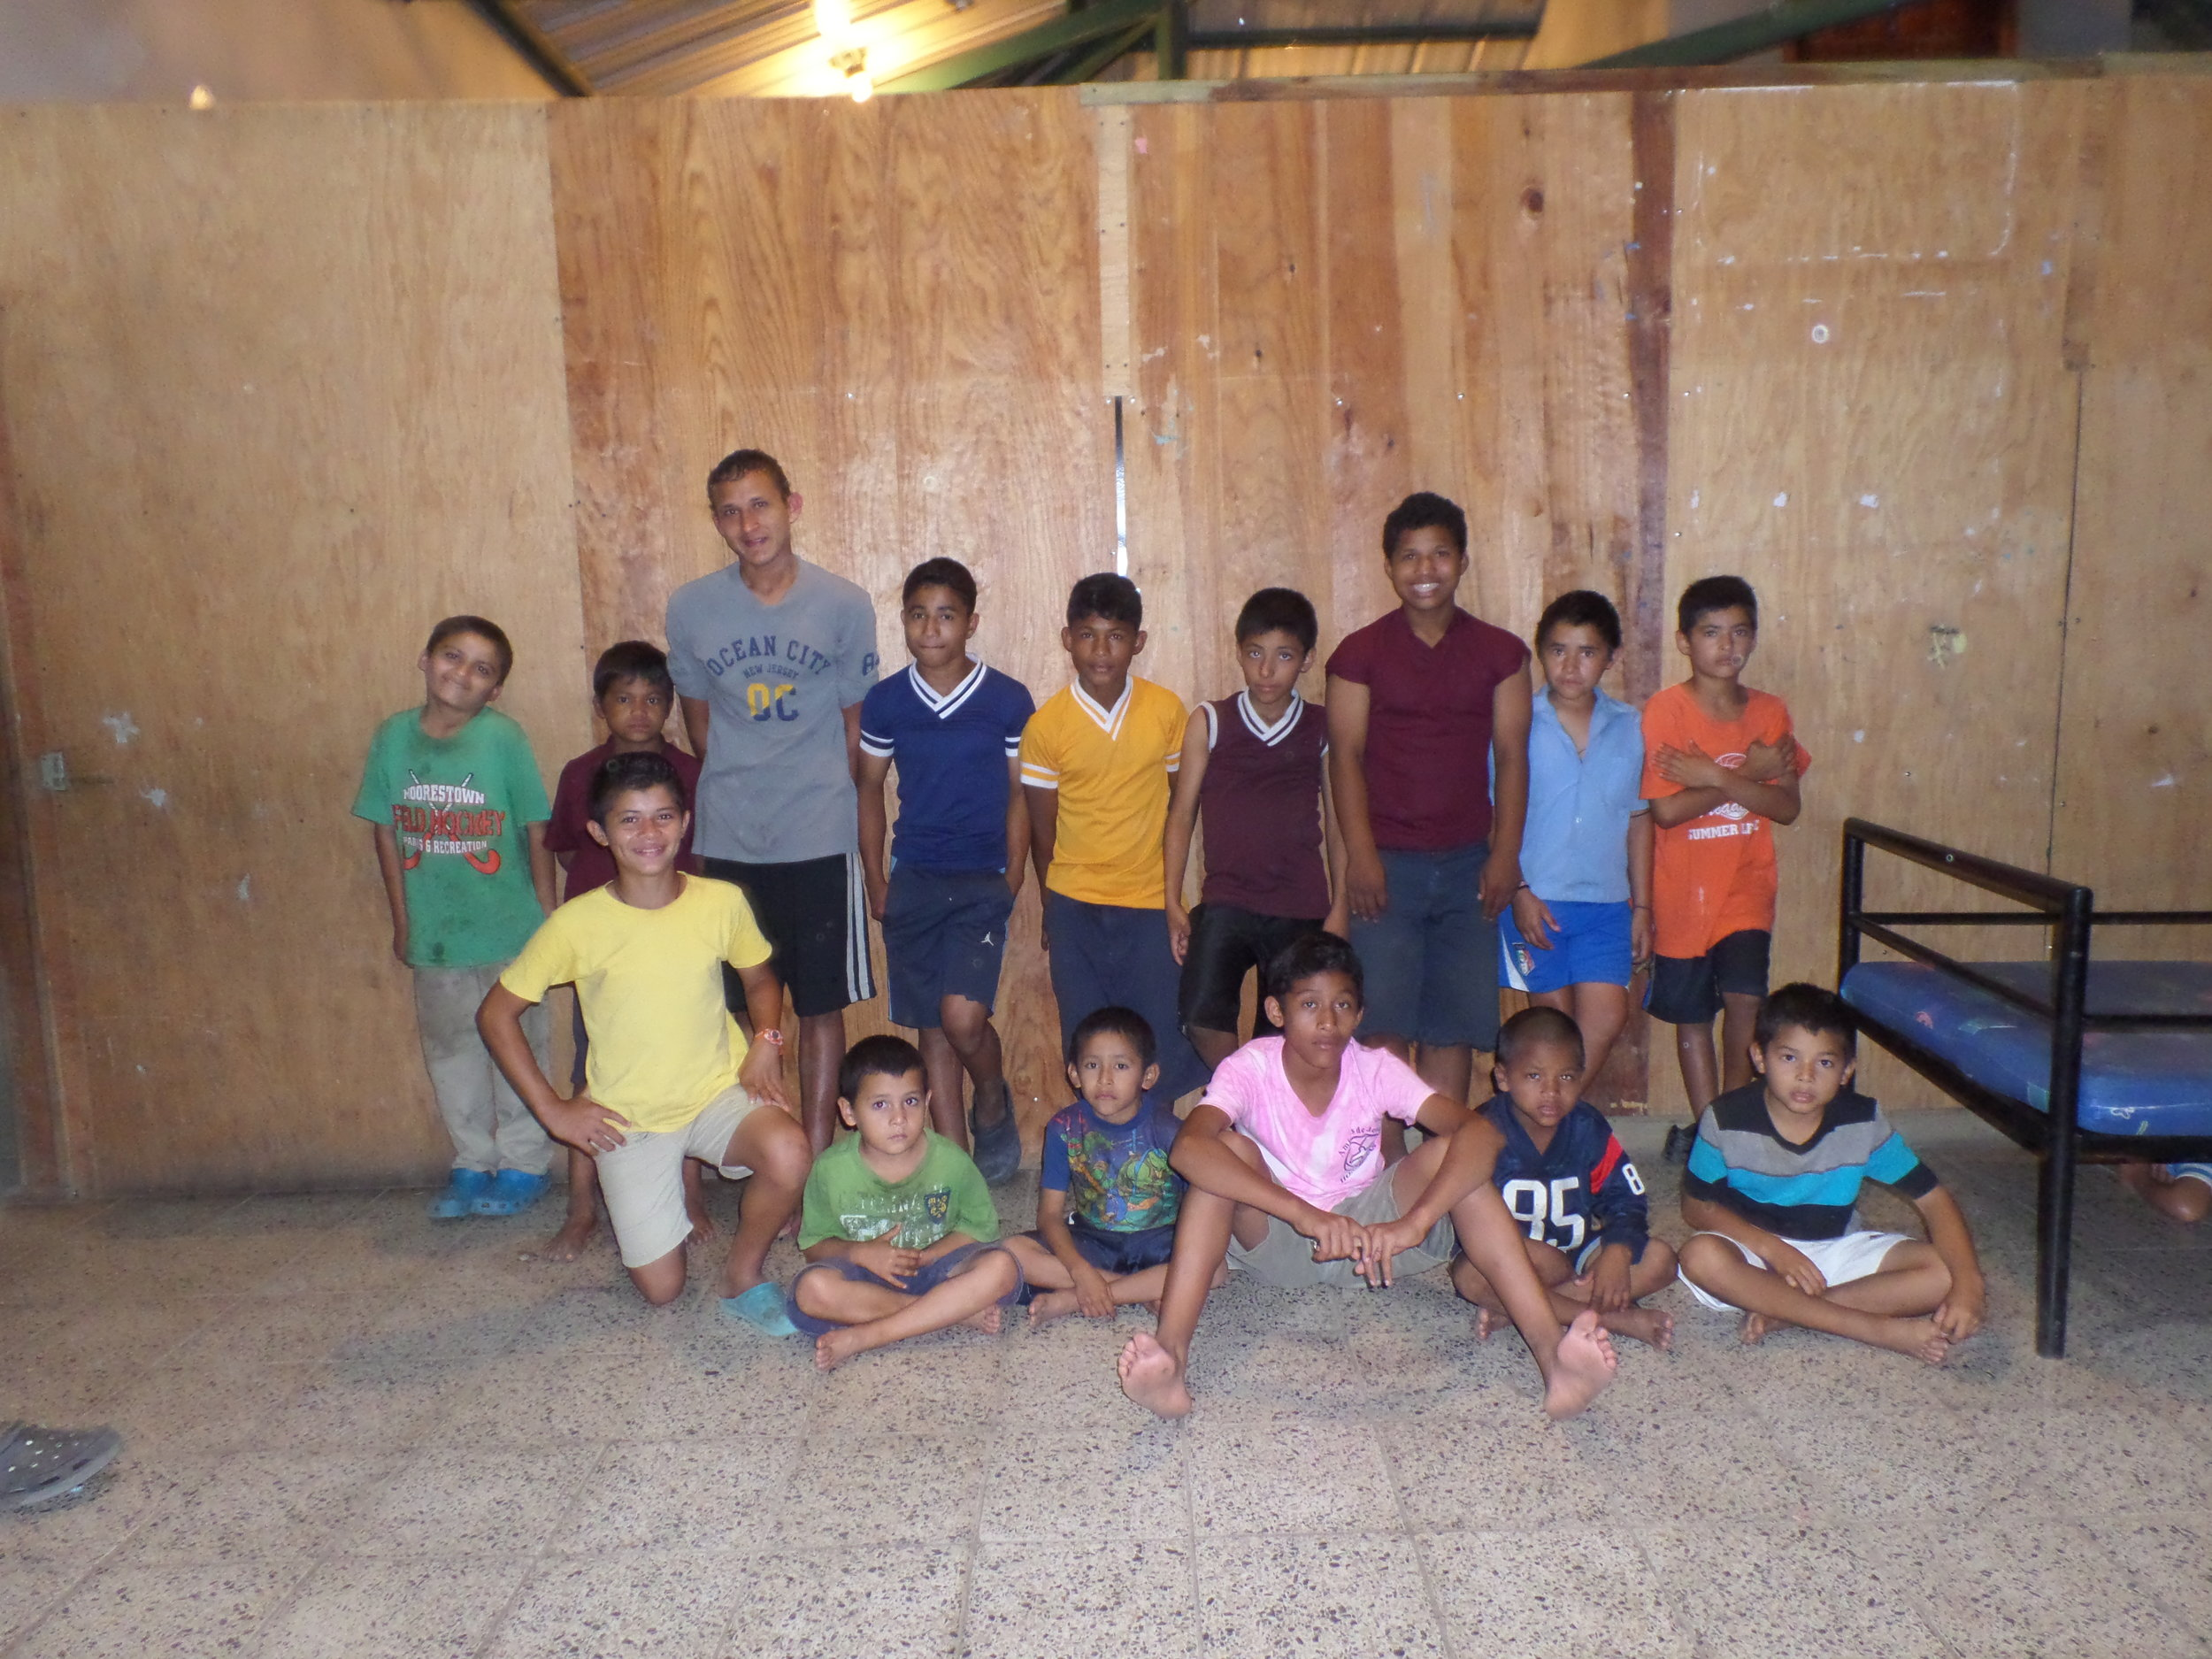 Lucio, pictured standing up in the blue shirt second from the right, and the other boys in his 'hogar' posing for a photo in 2015.